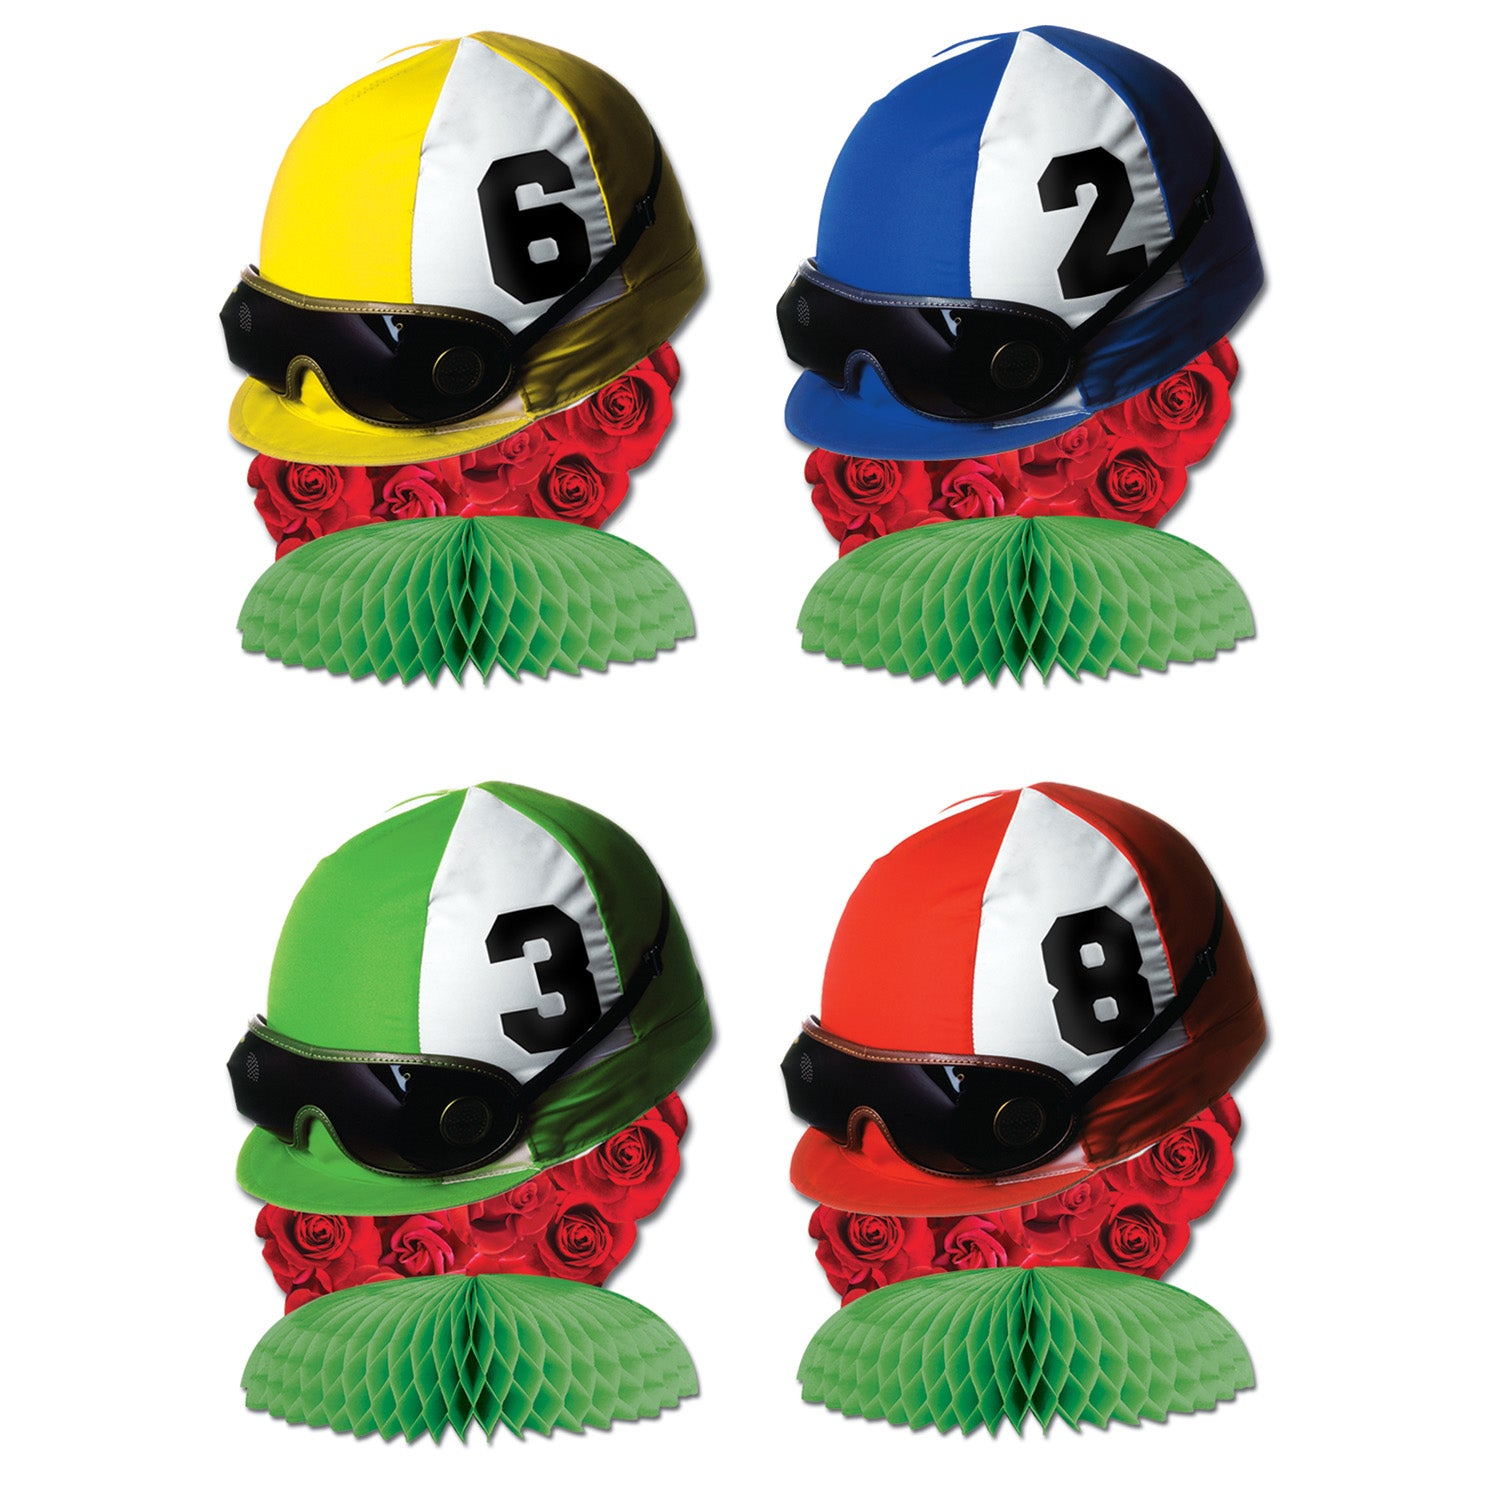 Jockey Helmet Mini Centerpieces (4/Pkg) by Beistle - Derby Day Theme Decorations